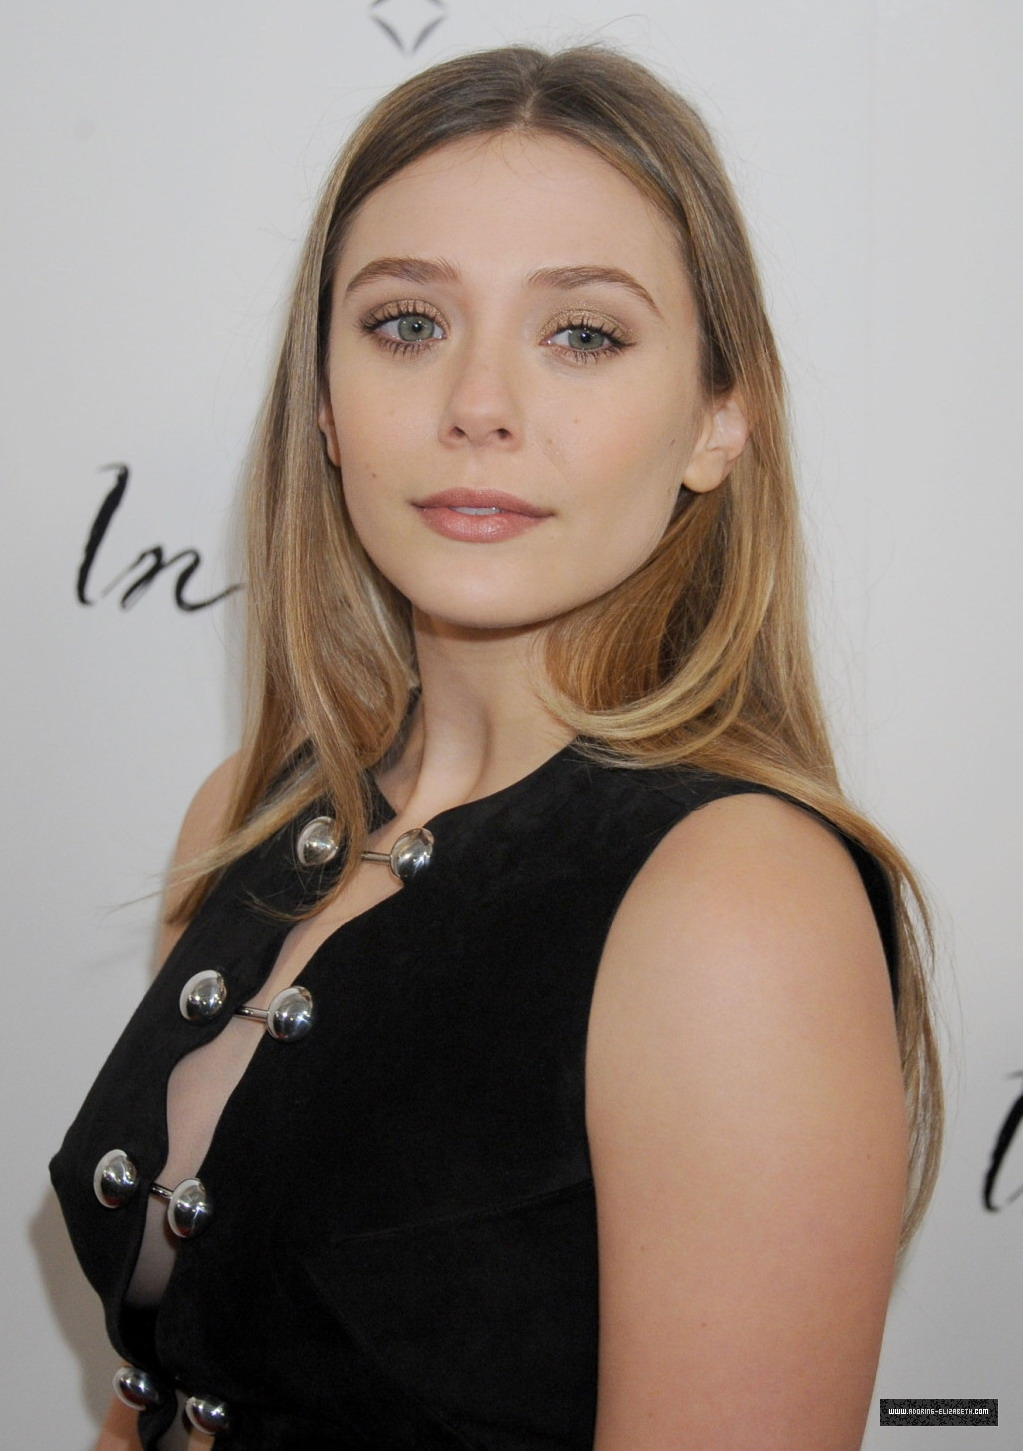 'In Secret' Los Angeles Premiere (February 7, 2014)